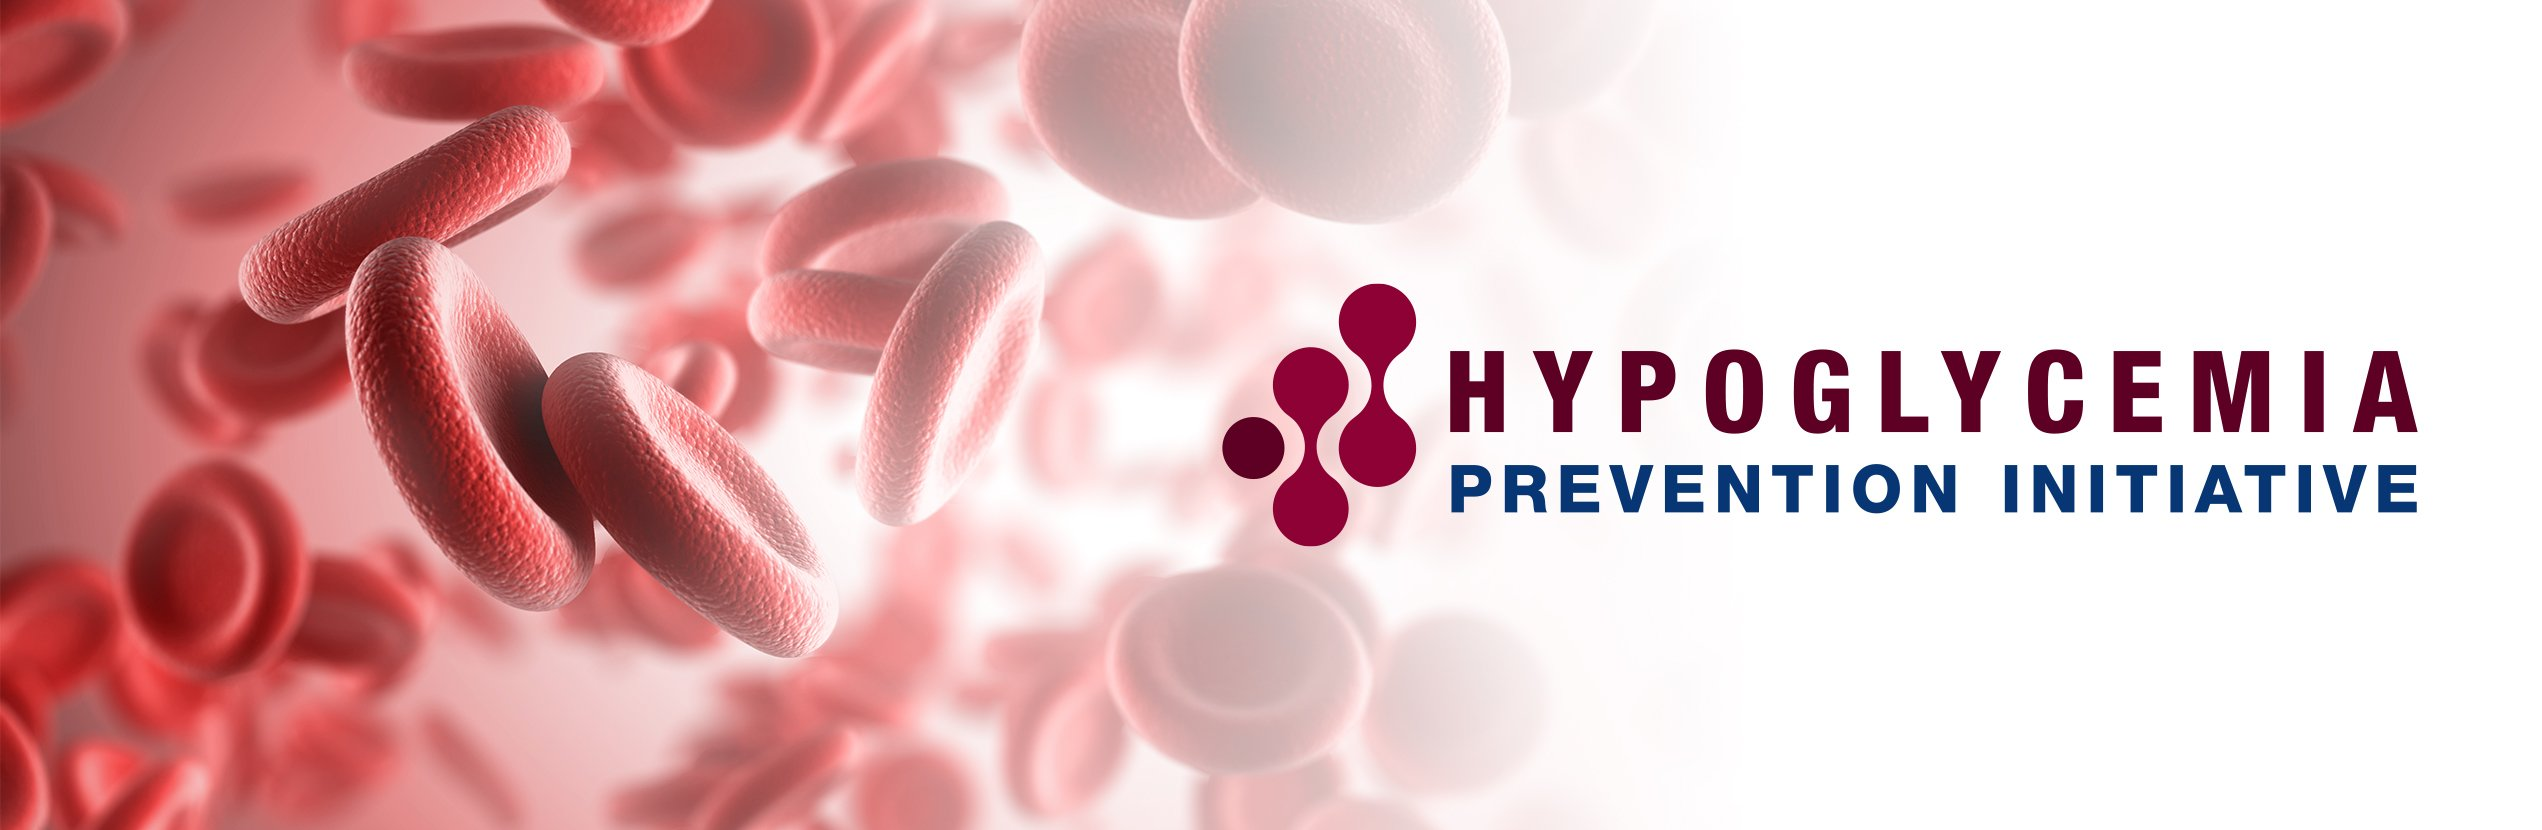 Hypoglycemia Prevention Initiative